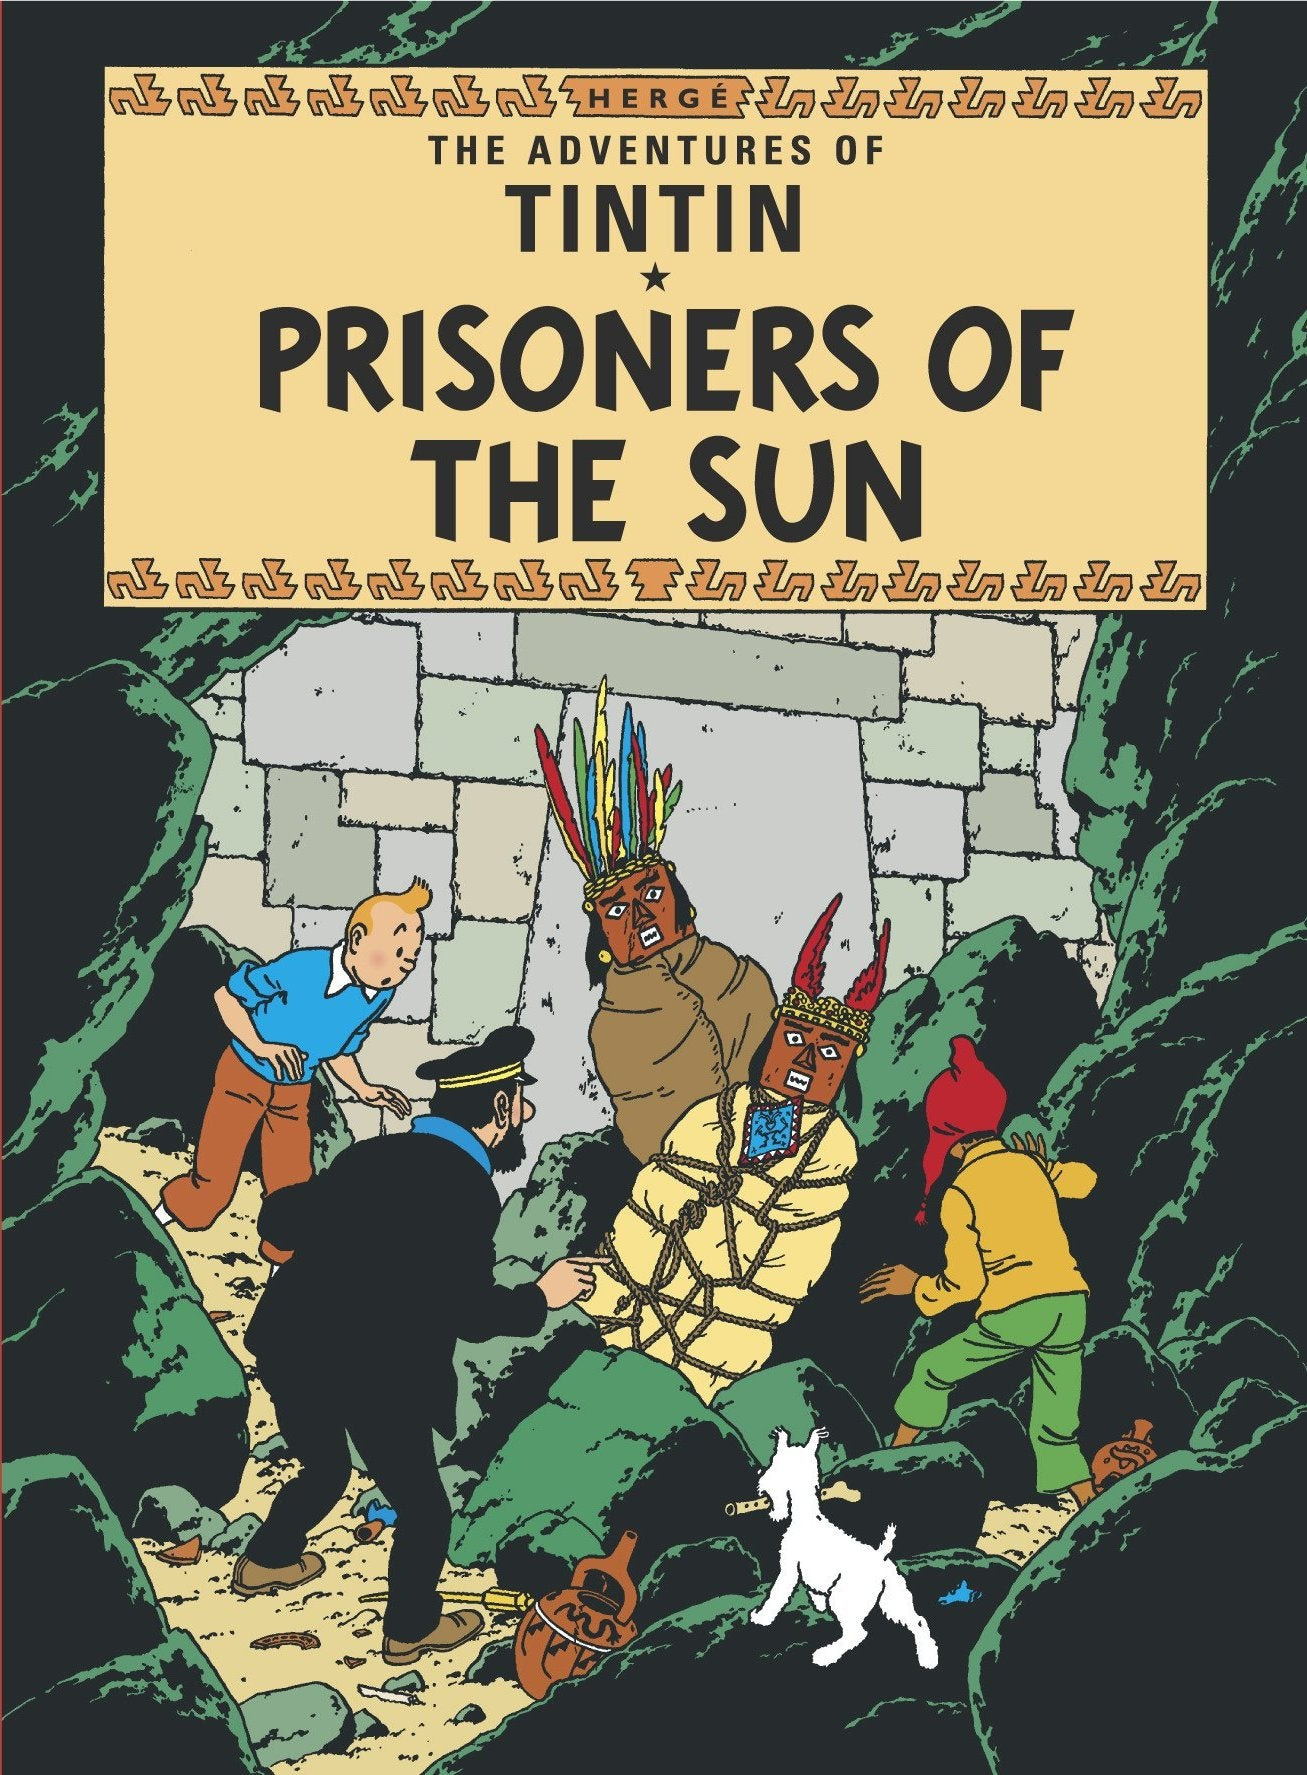 ENG COVER POSTCARD: Prisoners of the Sun